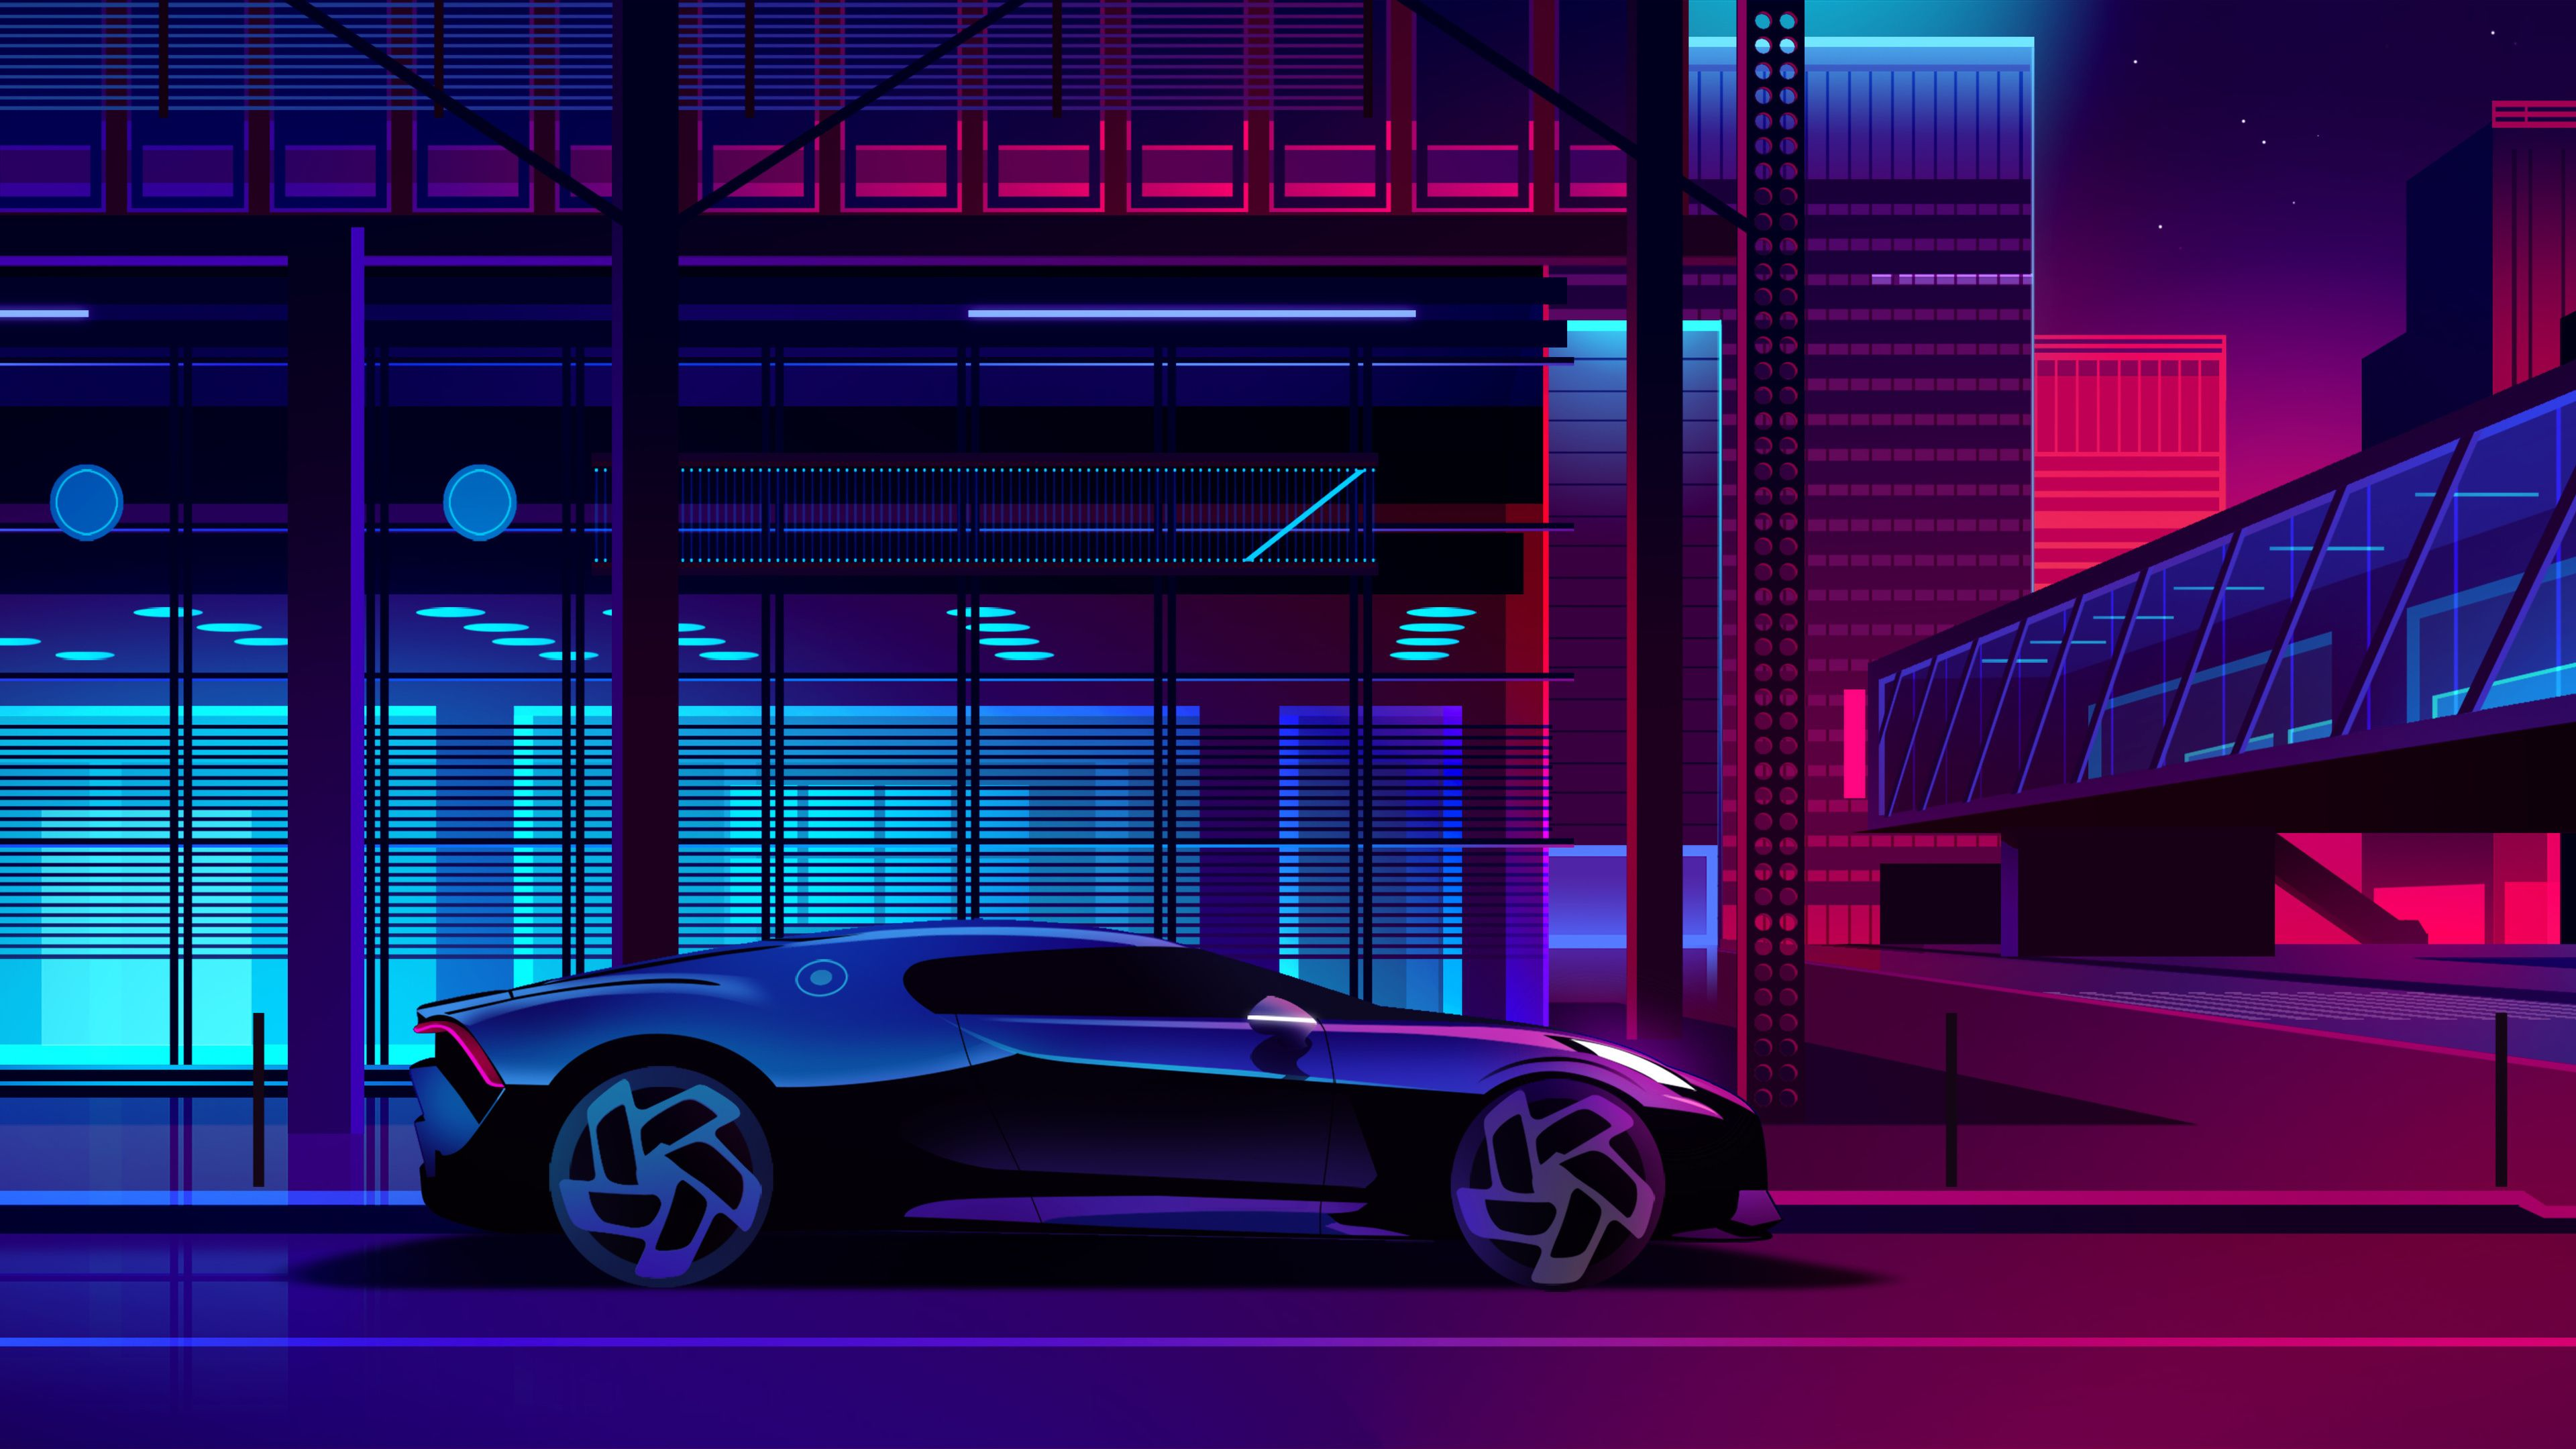 Bugatti Noire Neon Art Retrowave Wallpapers Neon Wallpapers Hd Wallpapers Digital Art Wallpapers Cars Wallpapers Bugatti Wal In 2020 Neon Art Bugatti Illustration